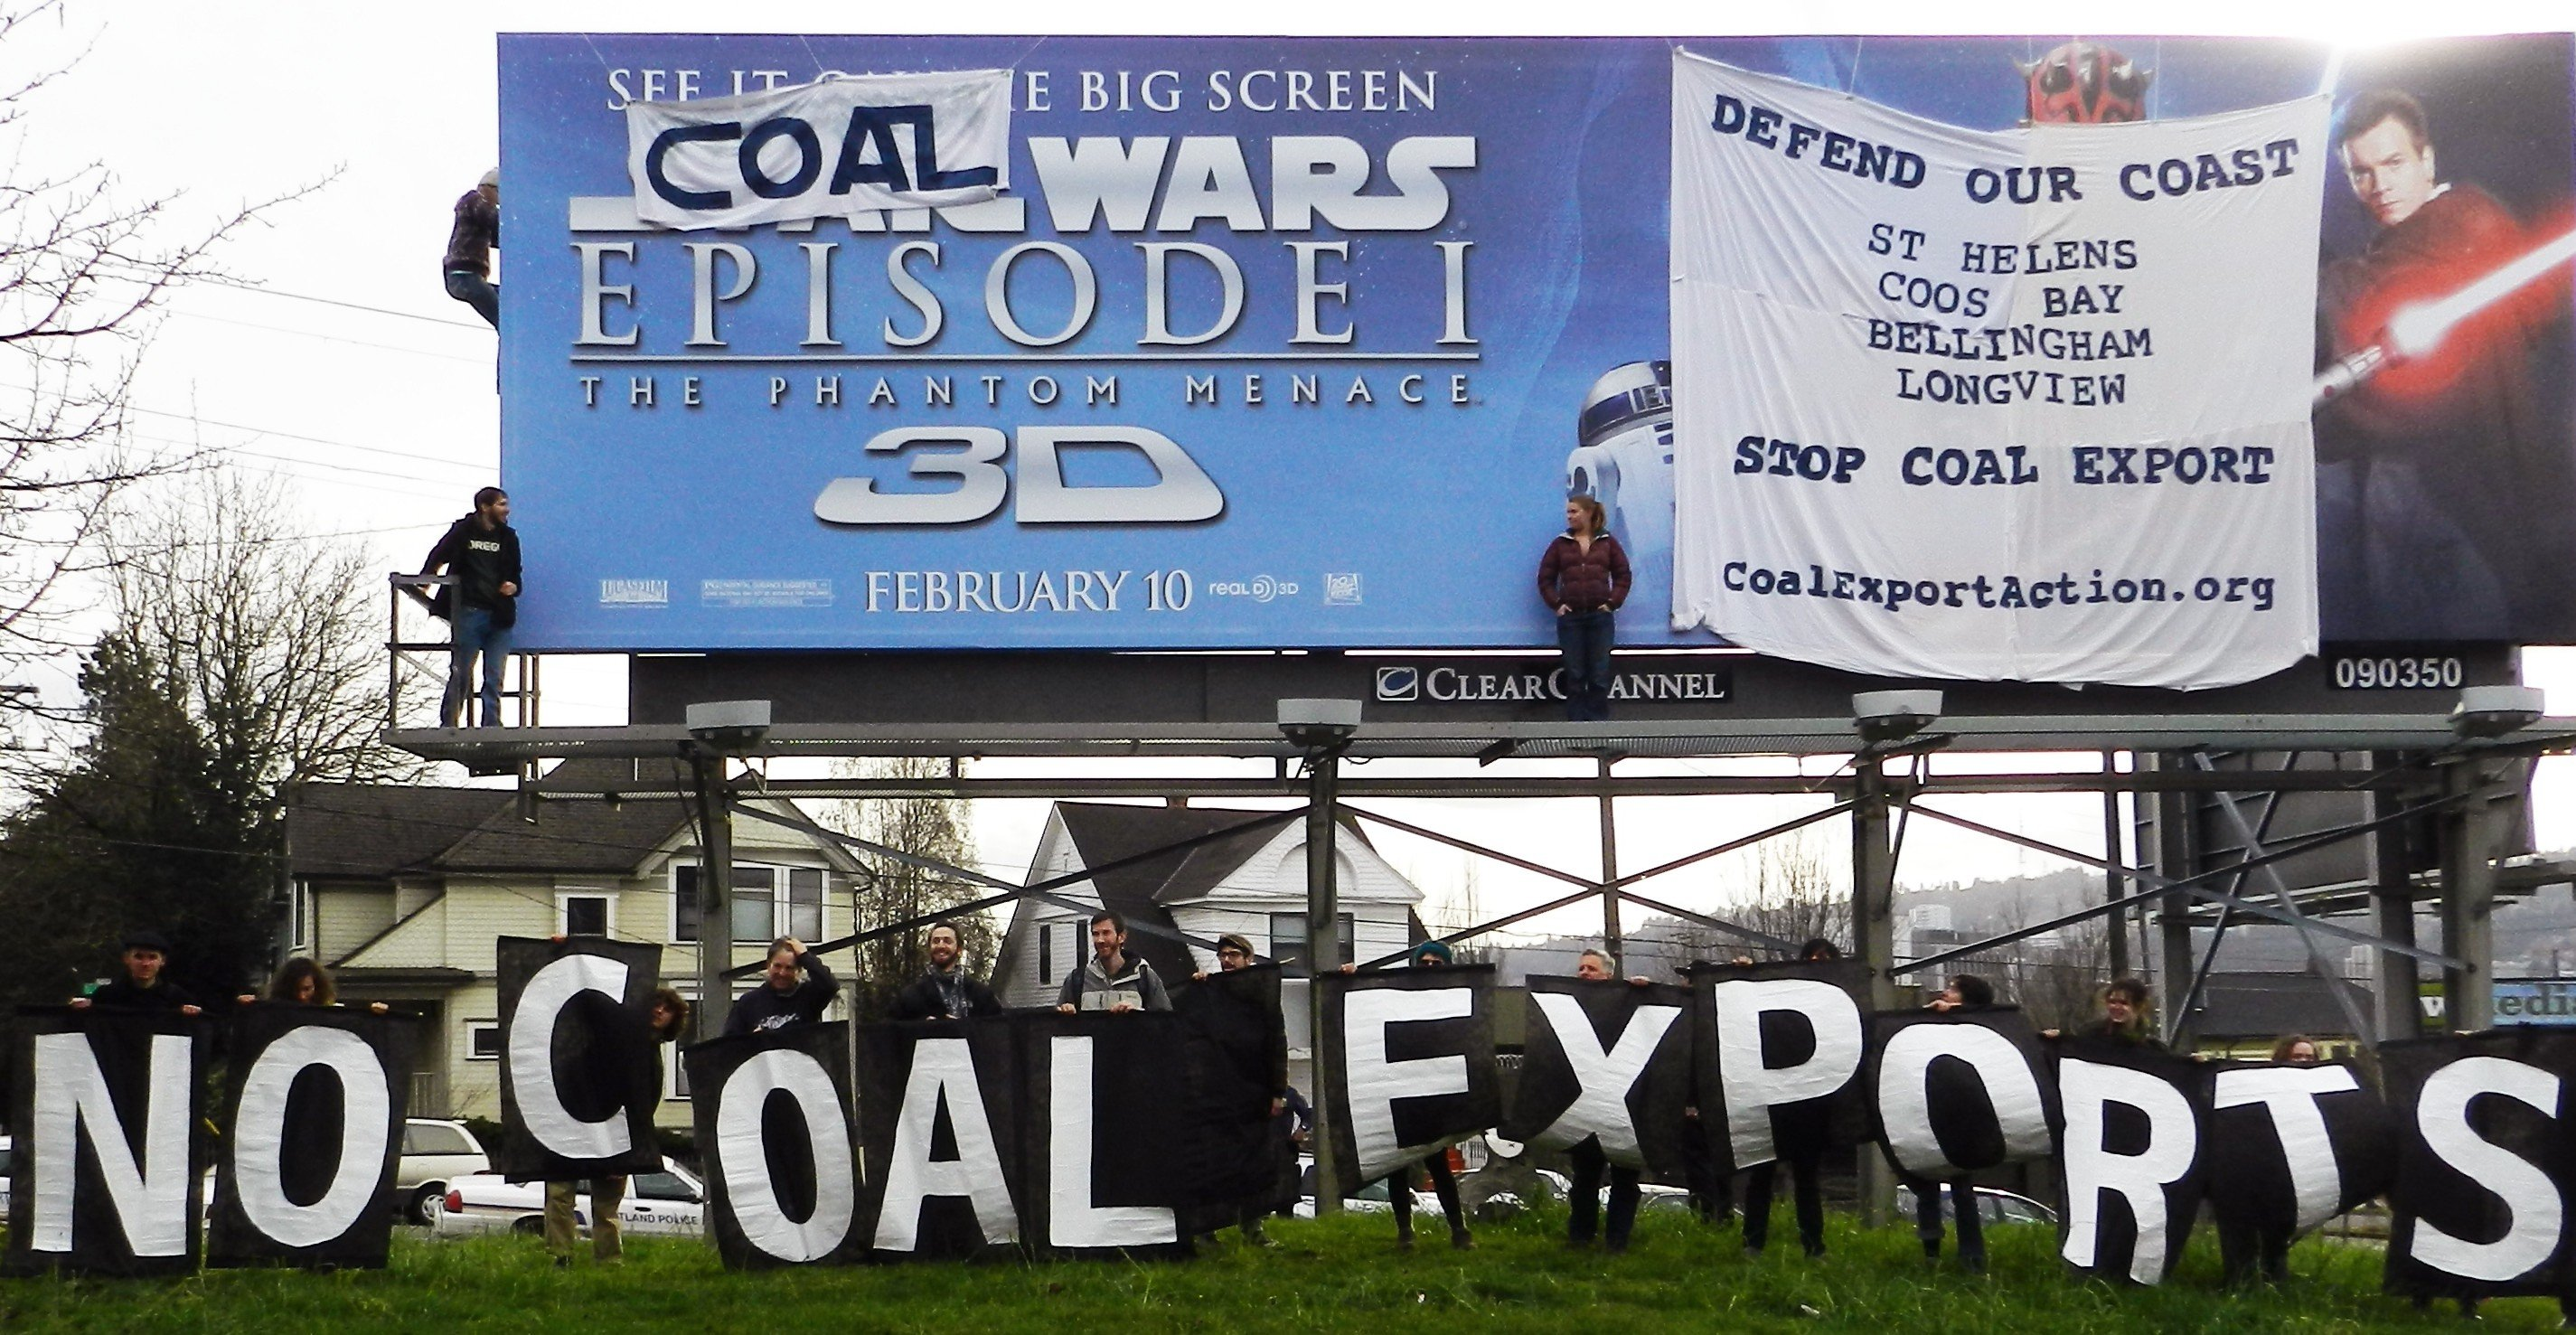 CCN Activists Scale Billboard, Expose Local Coal Threats